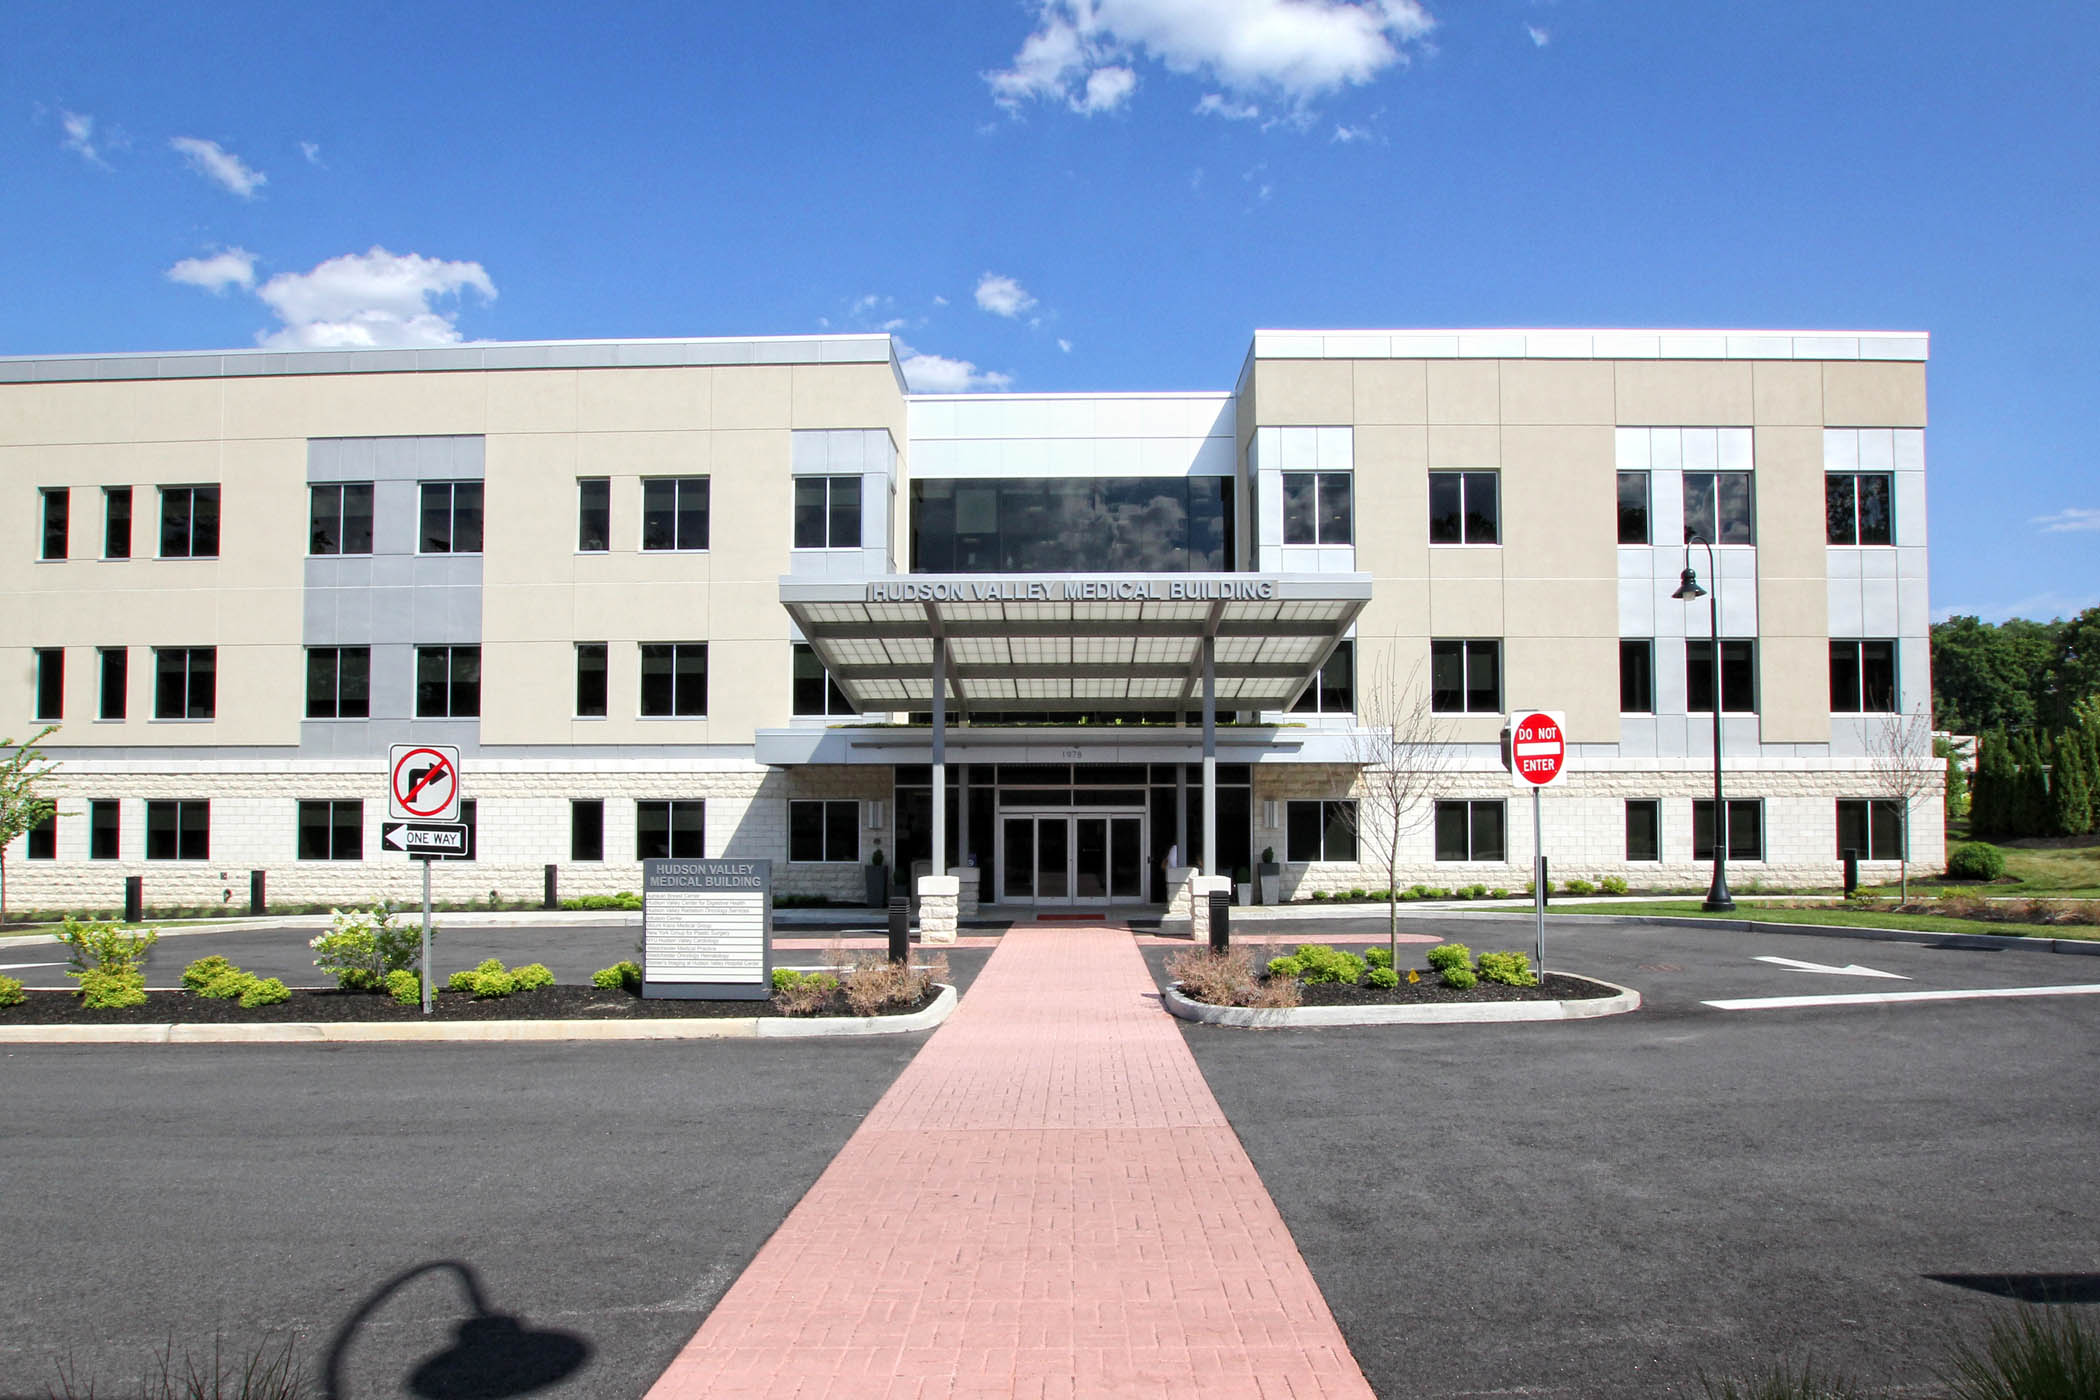 HUDSON VALLEY MEDICAL BUILDING